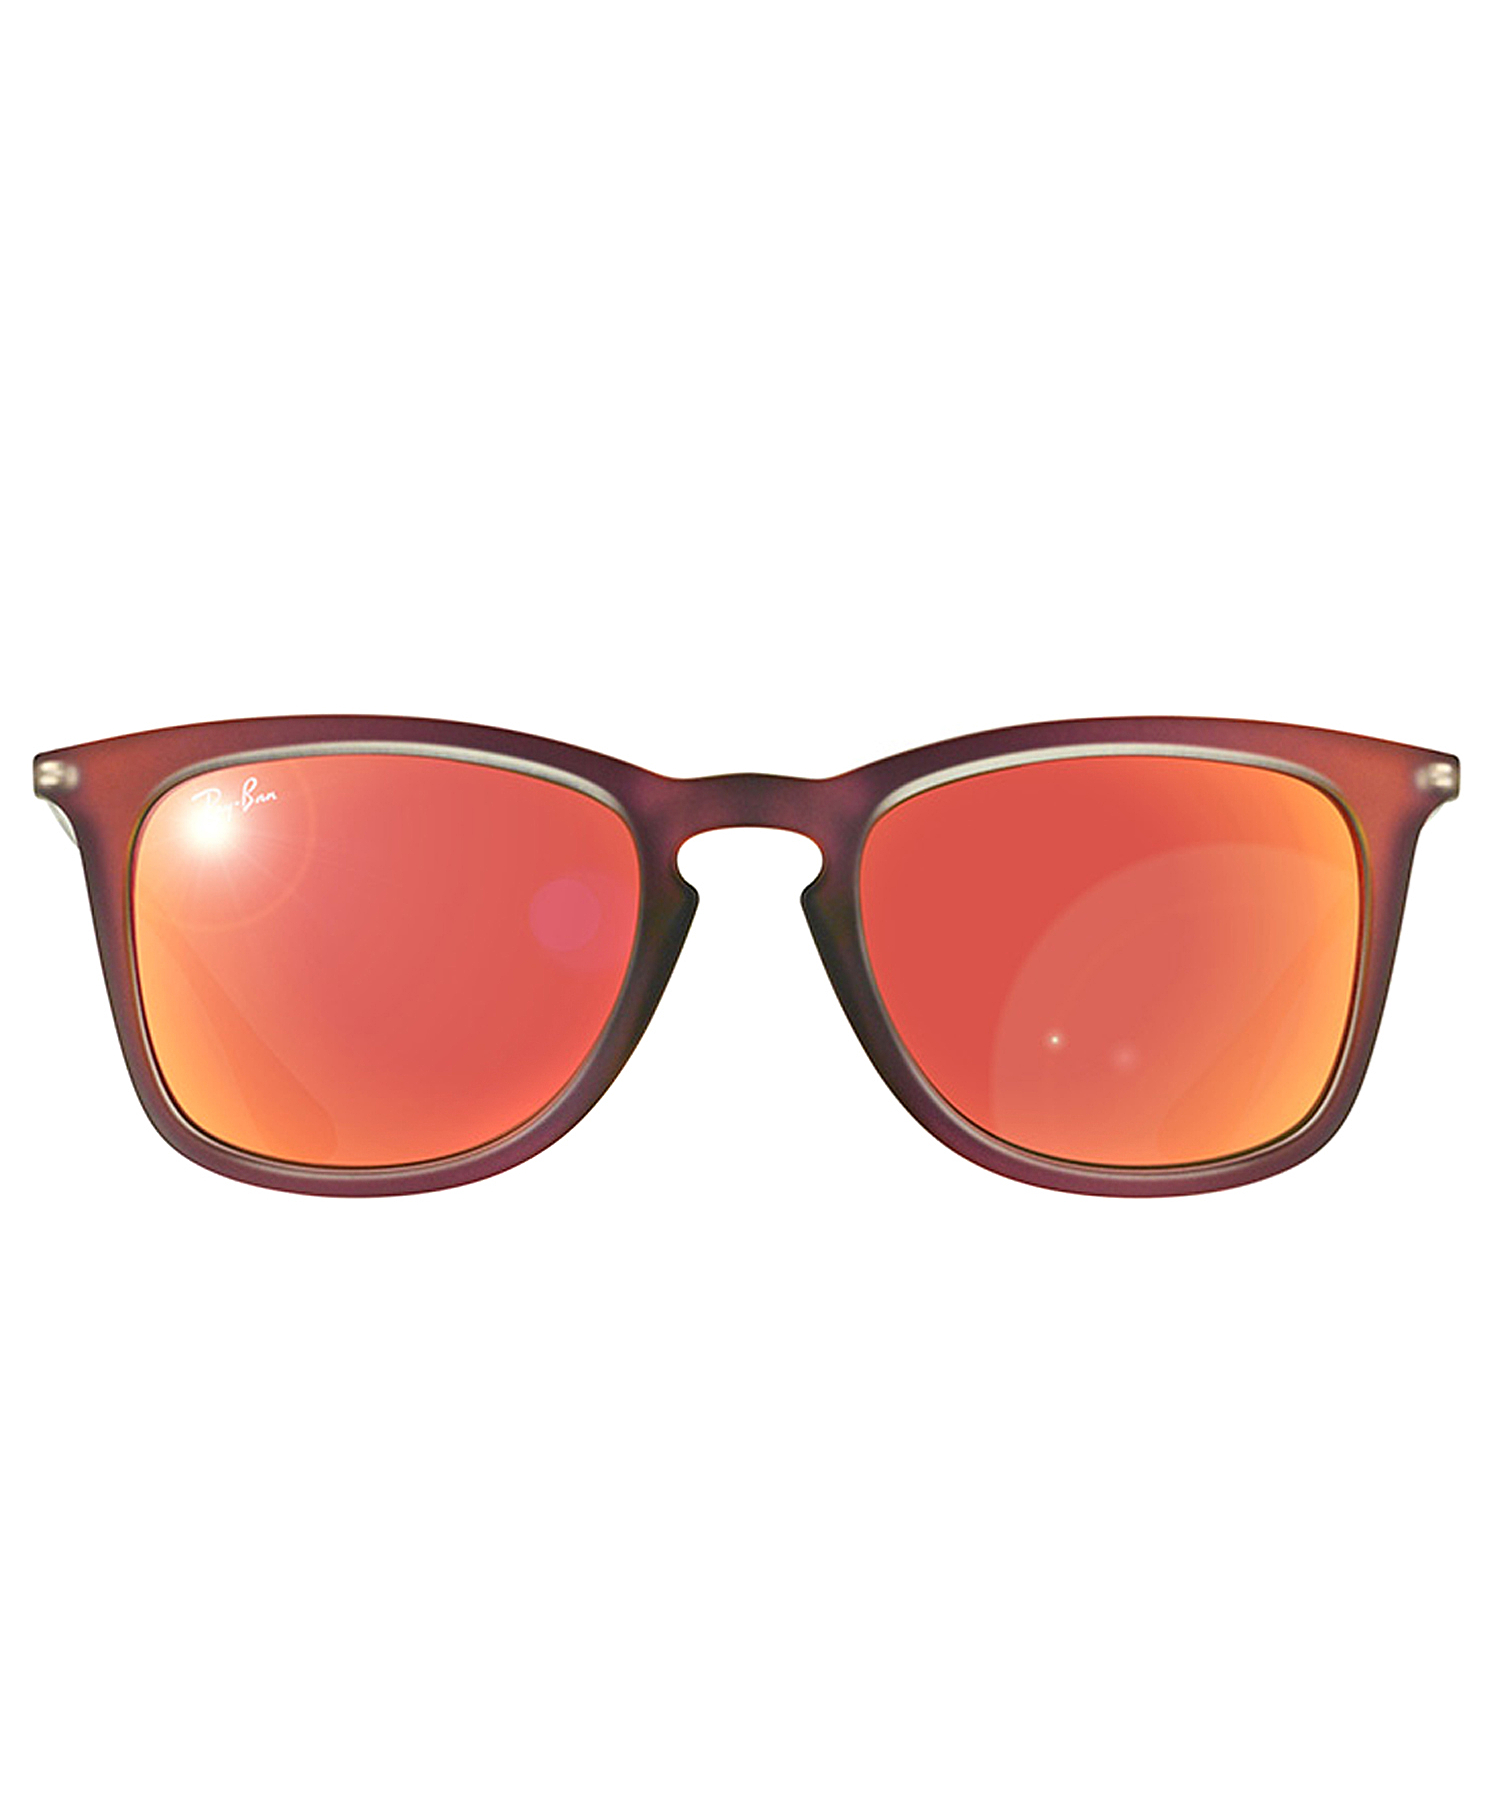 22574dc05743f3 All Models Of Ray Ban Sunglasses | www.tapdance.org